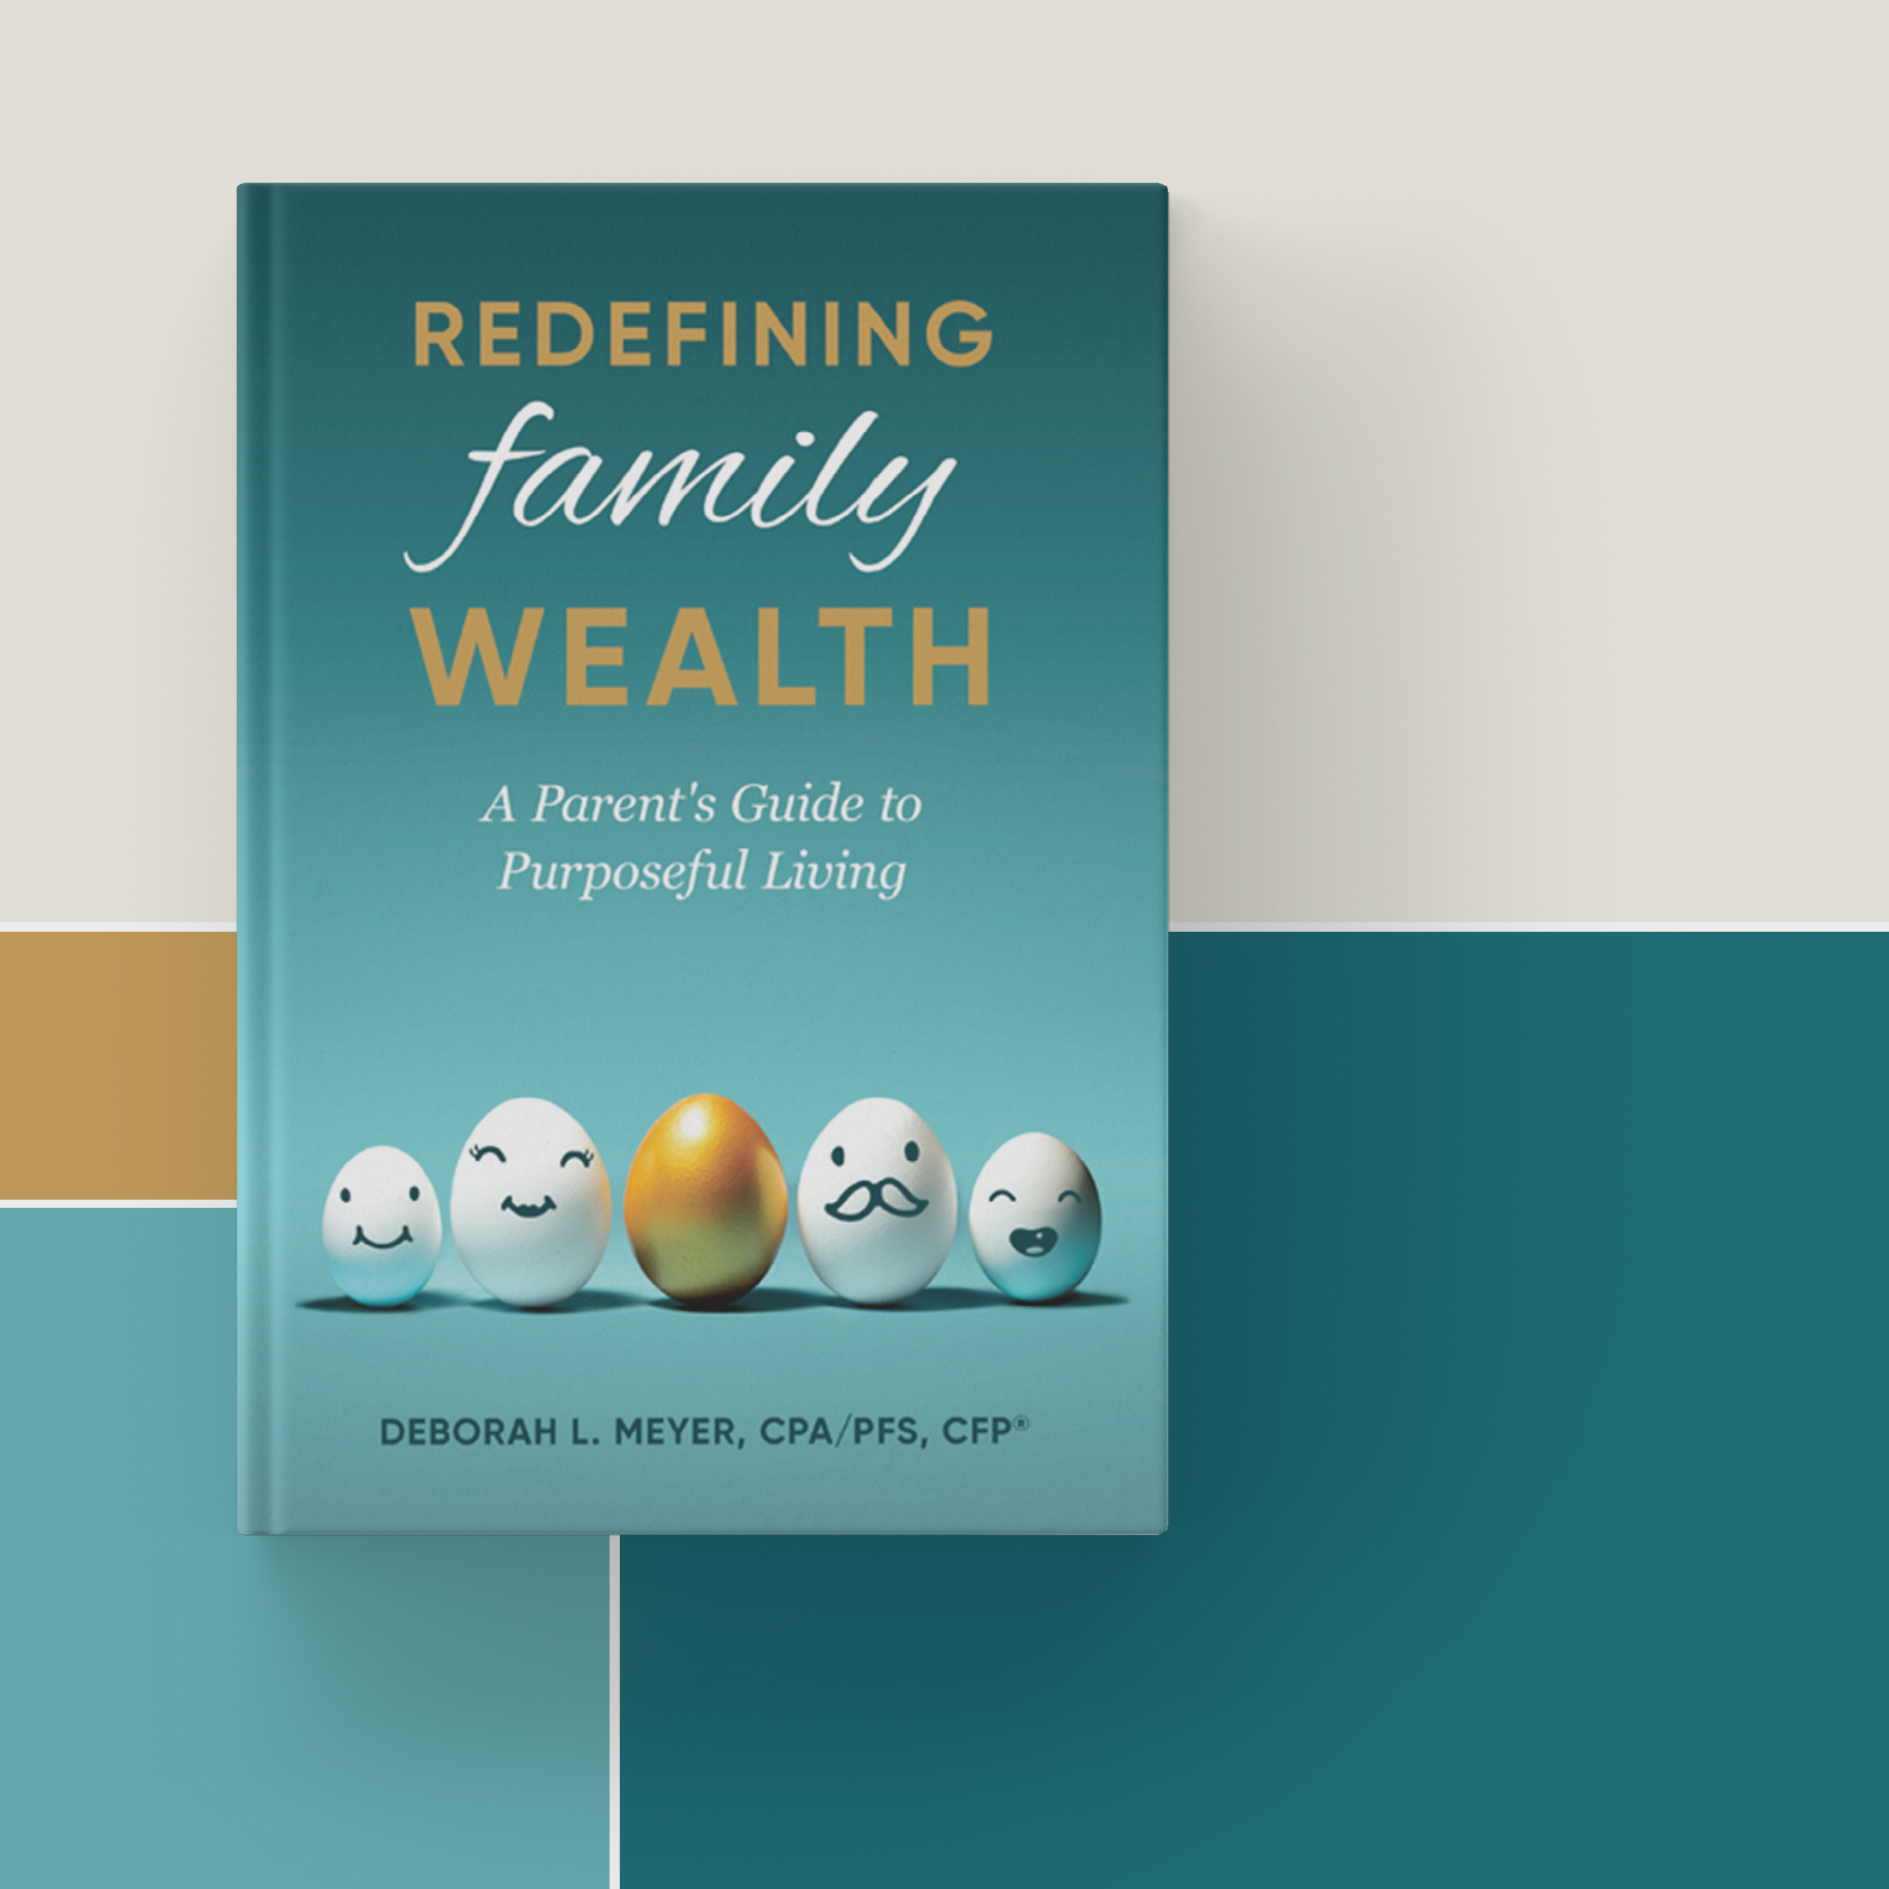 Money is only one measure of wealth. - Are you using human and social capital to enhance your life and the lives of others around you? Click here to preview Chapter one of Redefining Family Wealth: A Parent's Guide to Purposeful Living today!